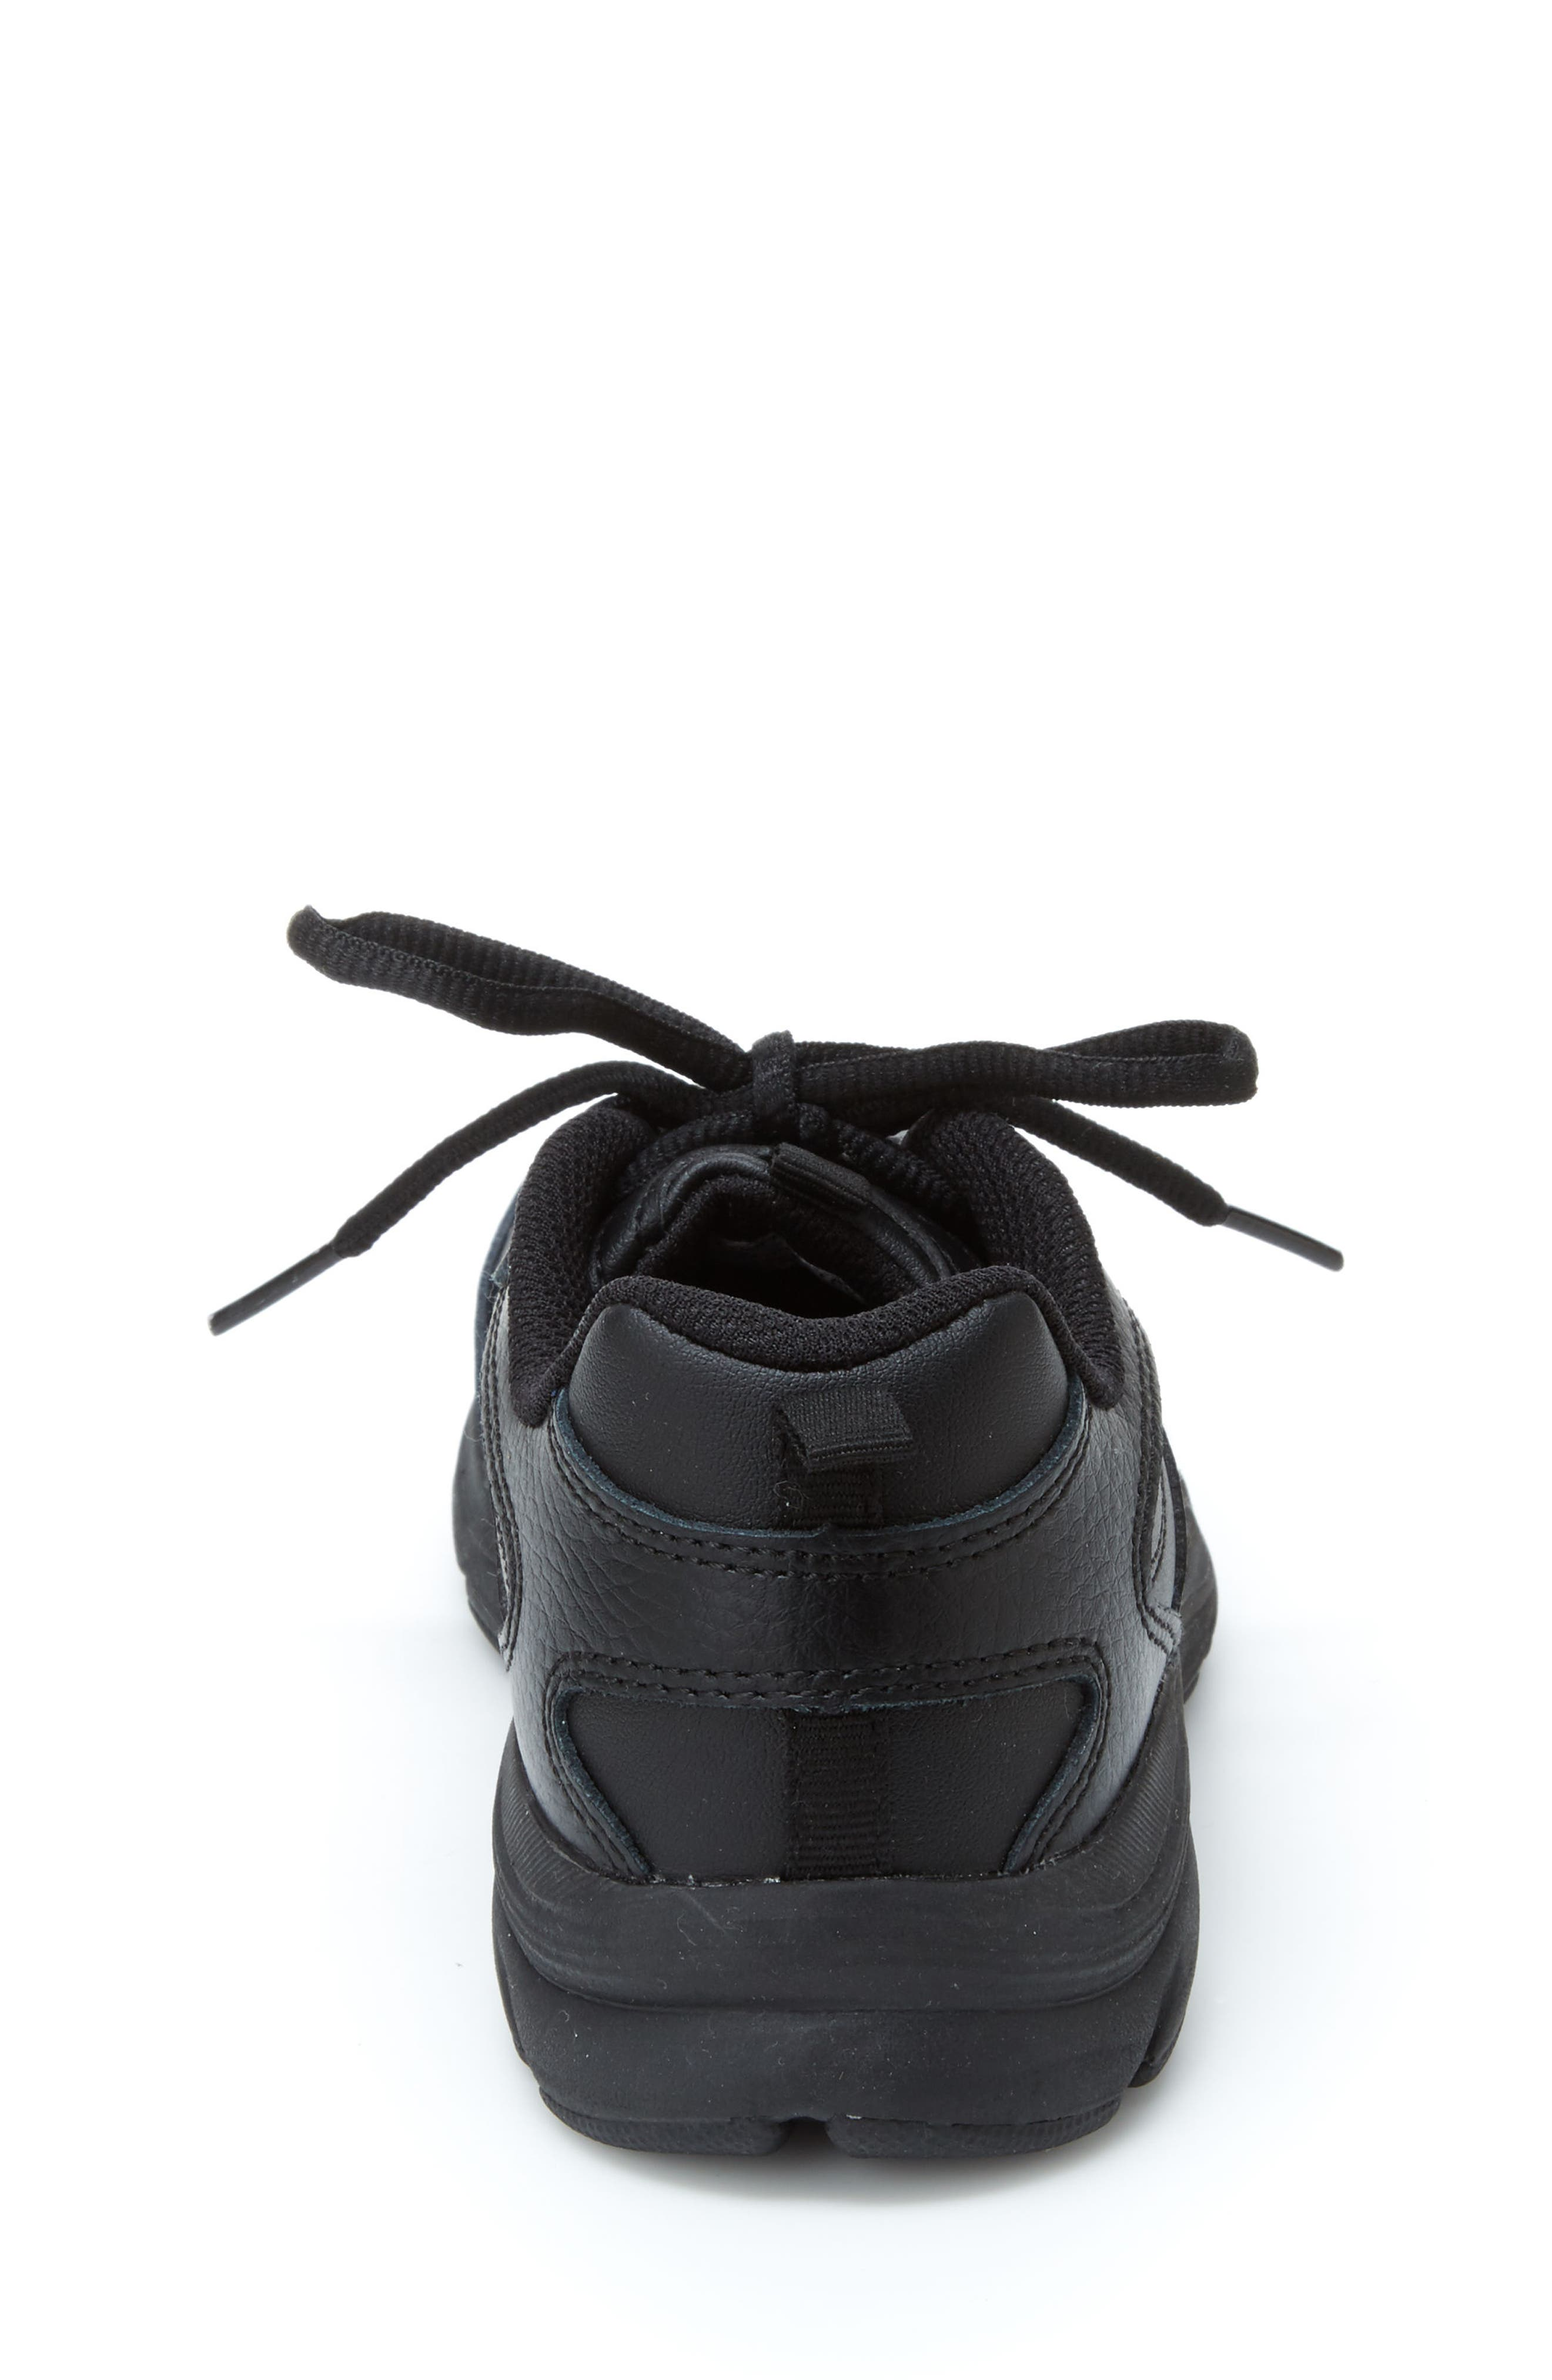 Cooper 2.0 Sneaker,                             Alternate thumbnail 6, color,                             BLACK